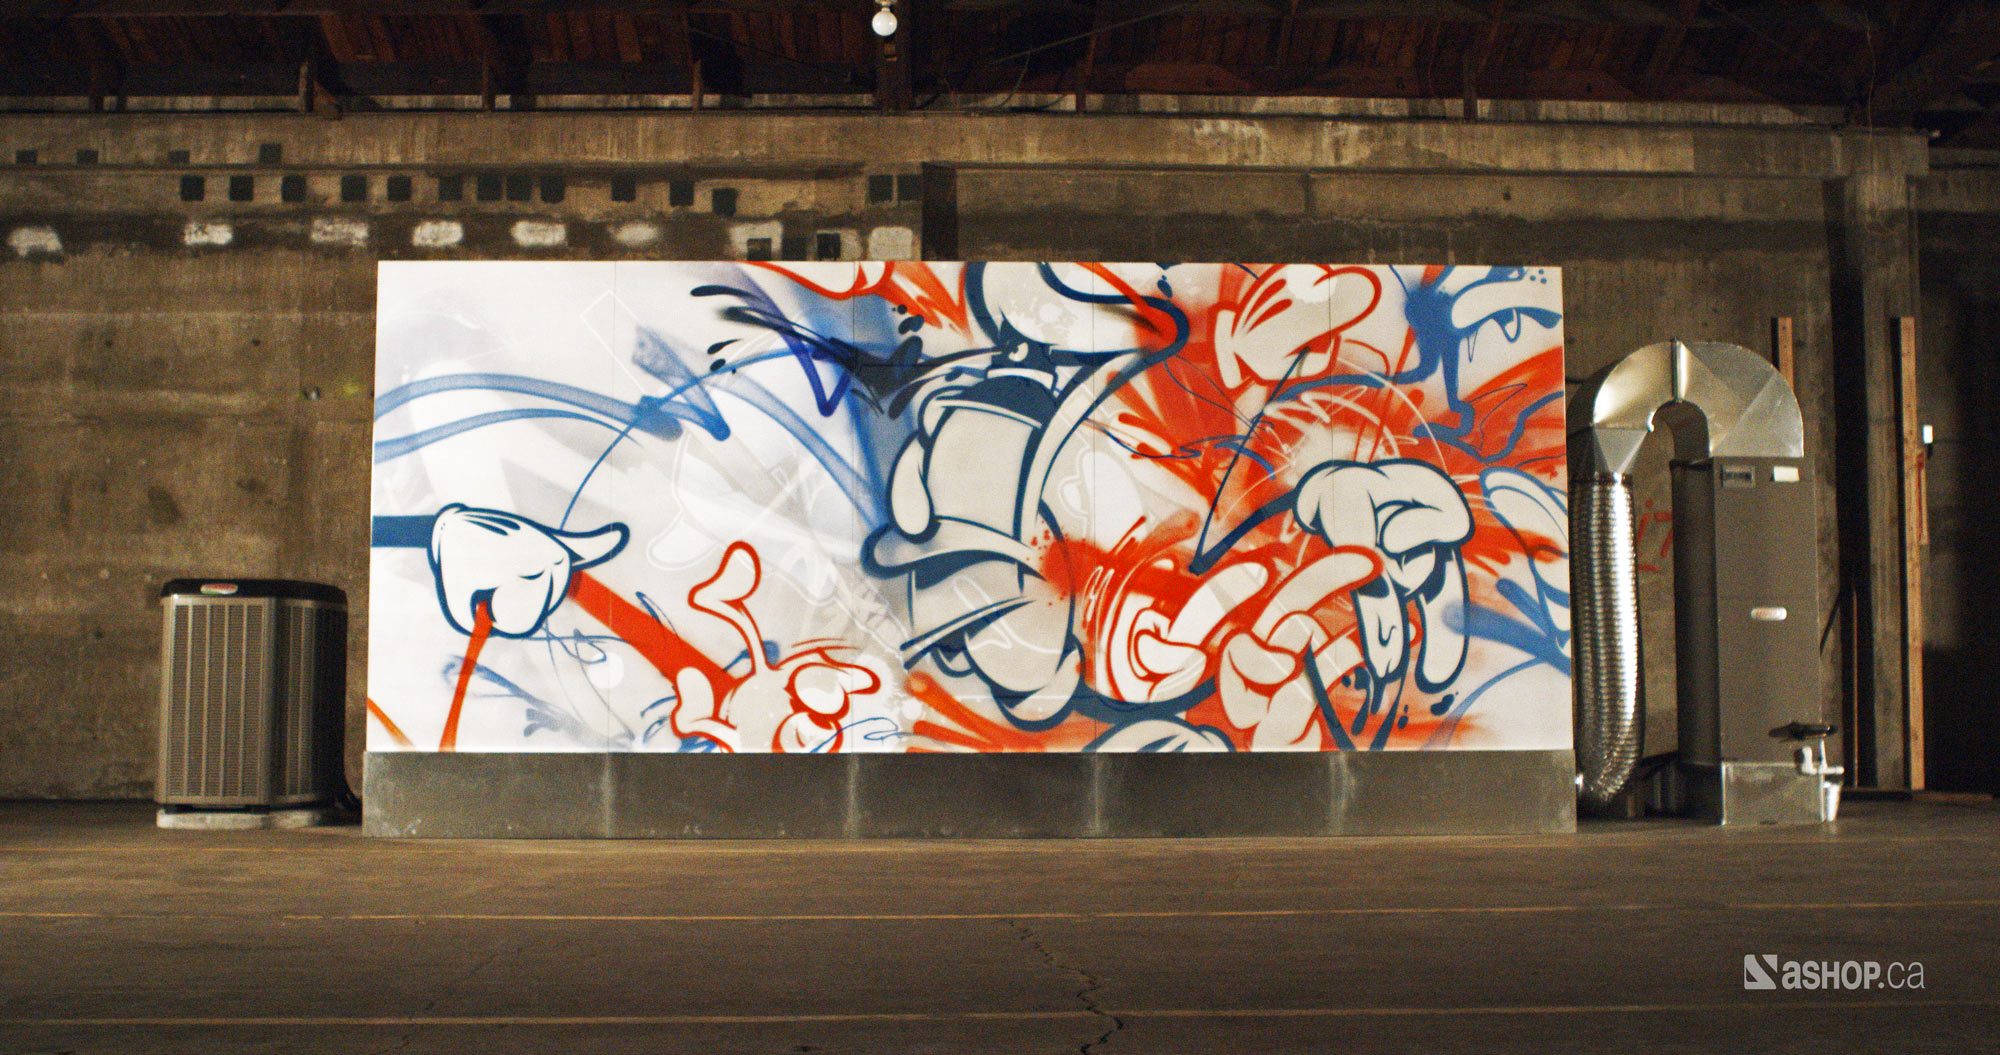 lennox_slick_before_ashop_a'shop_mural_murales_graffiti_street_art_montreal_paint_WEB.jpg